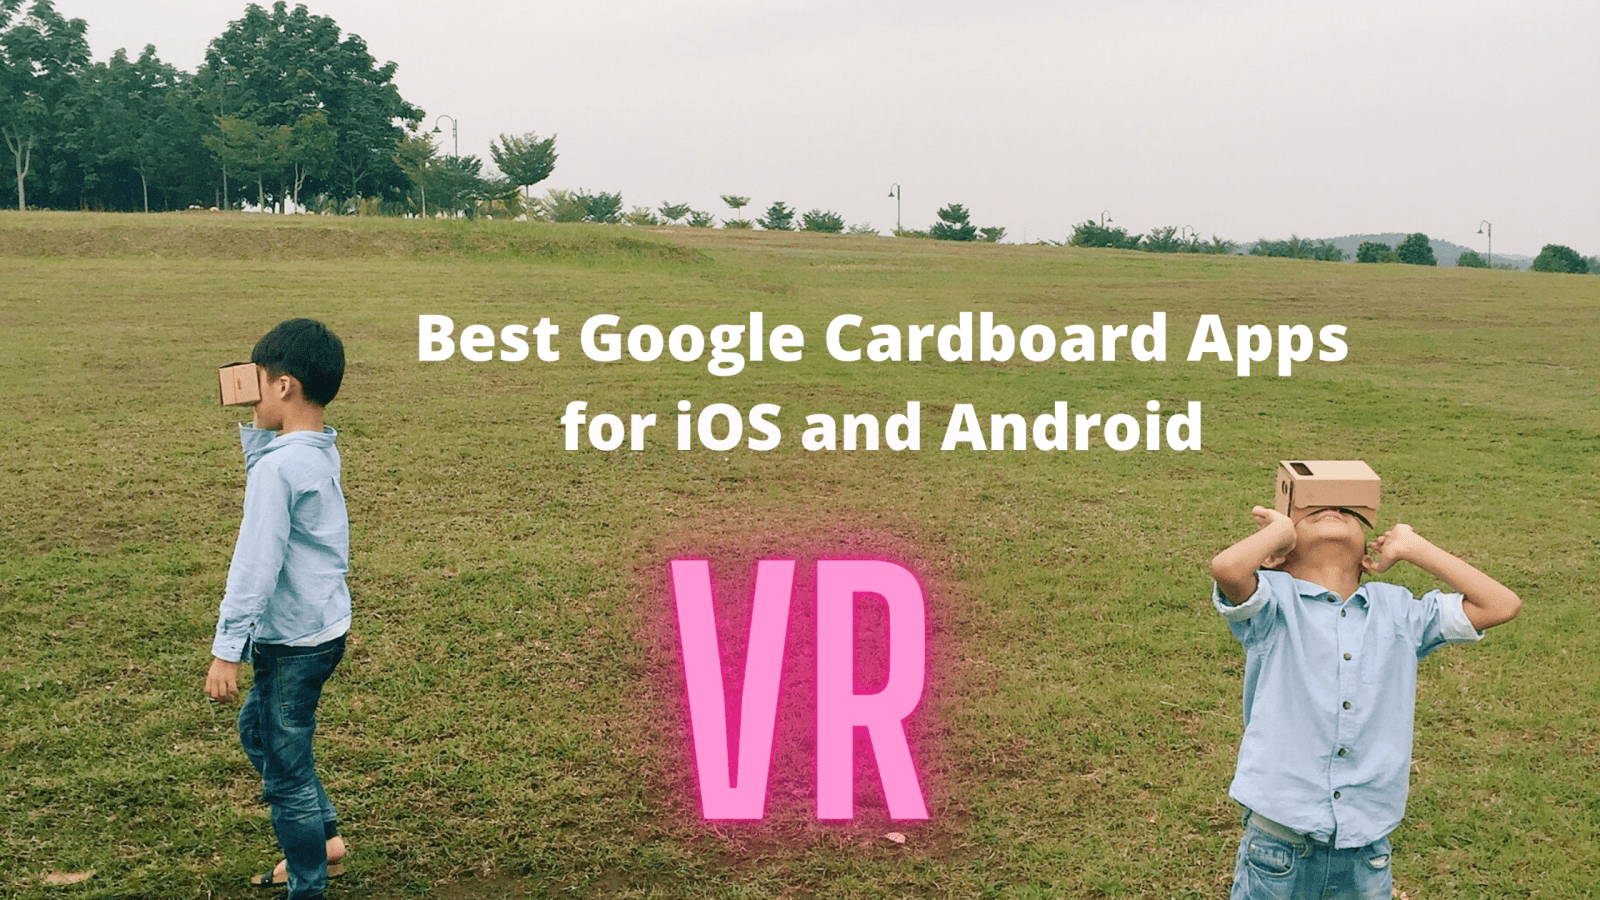 15 Best Google Cardboard Apps (iOS/Android)